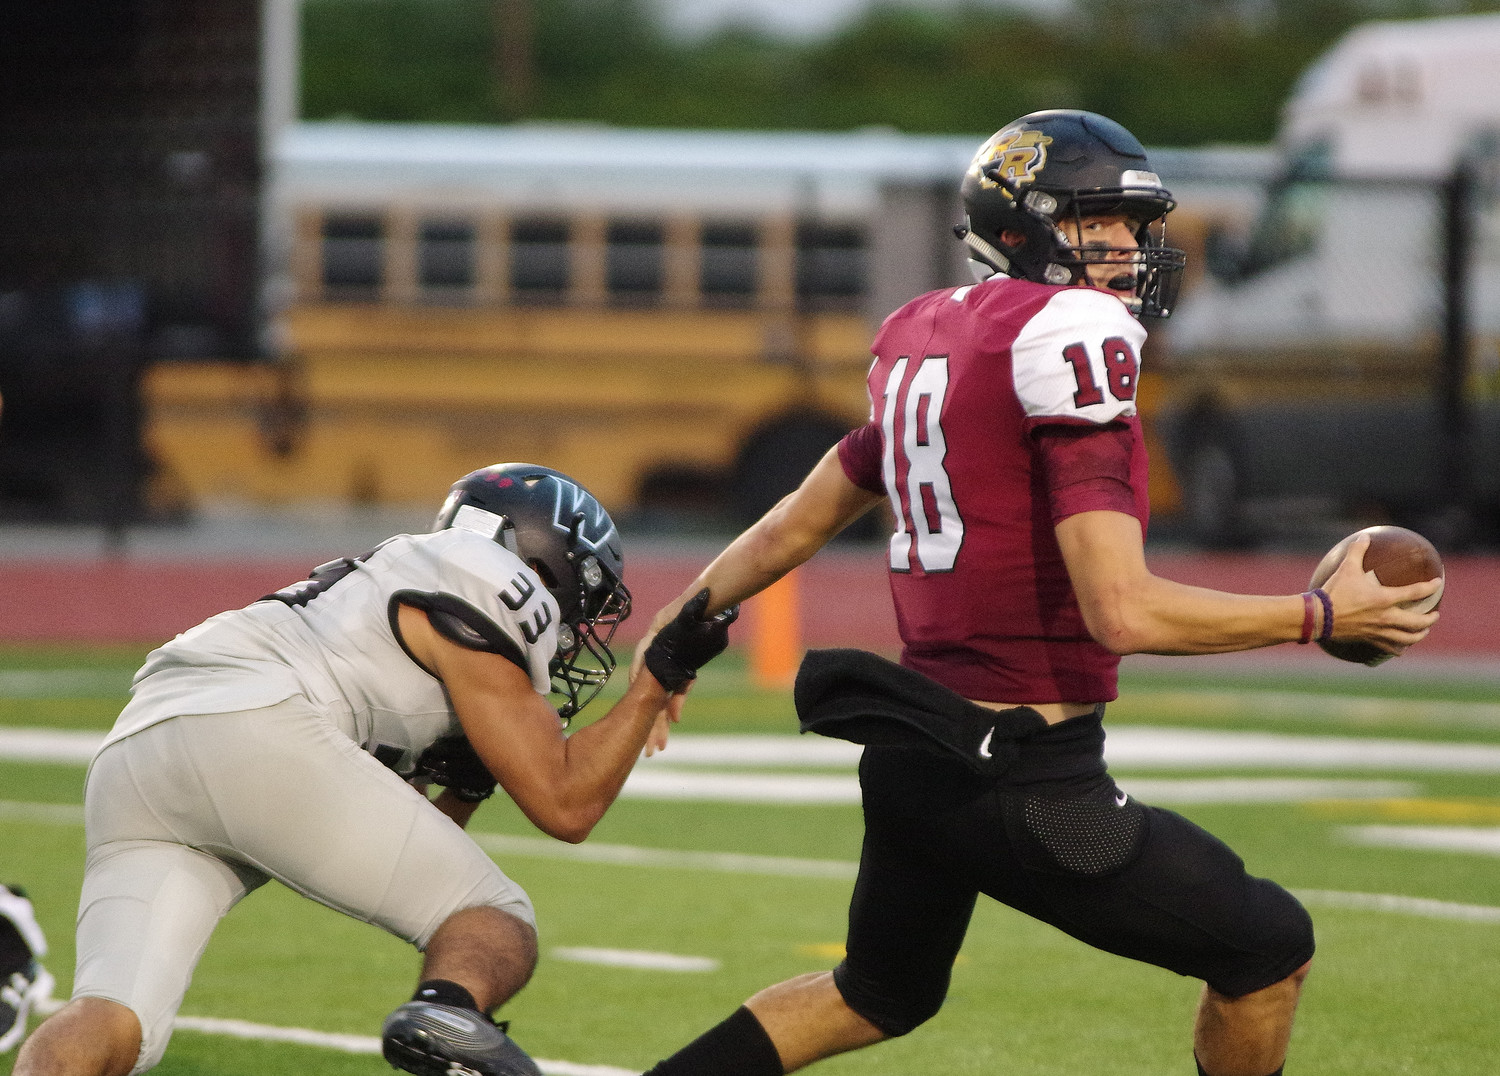 Rouse High School quarterback Ethan Moore (18) comes out of the pocket under pressure against Weiss at Bible Stadium on September 13, 2018.